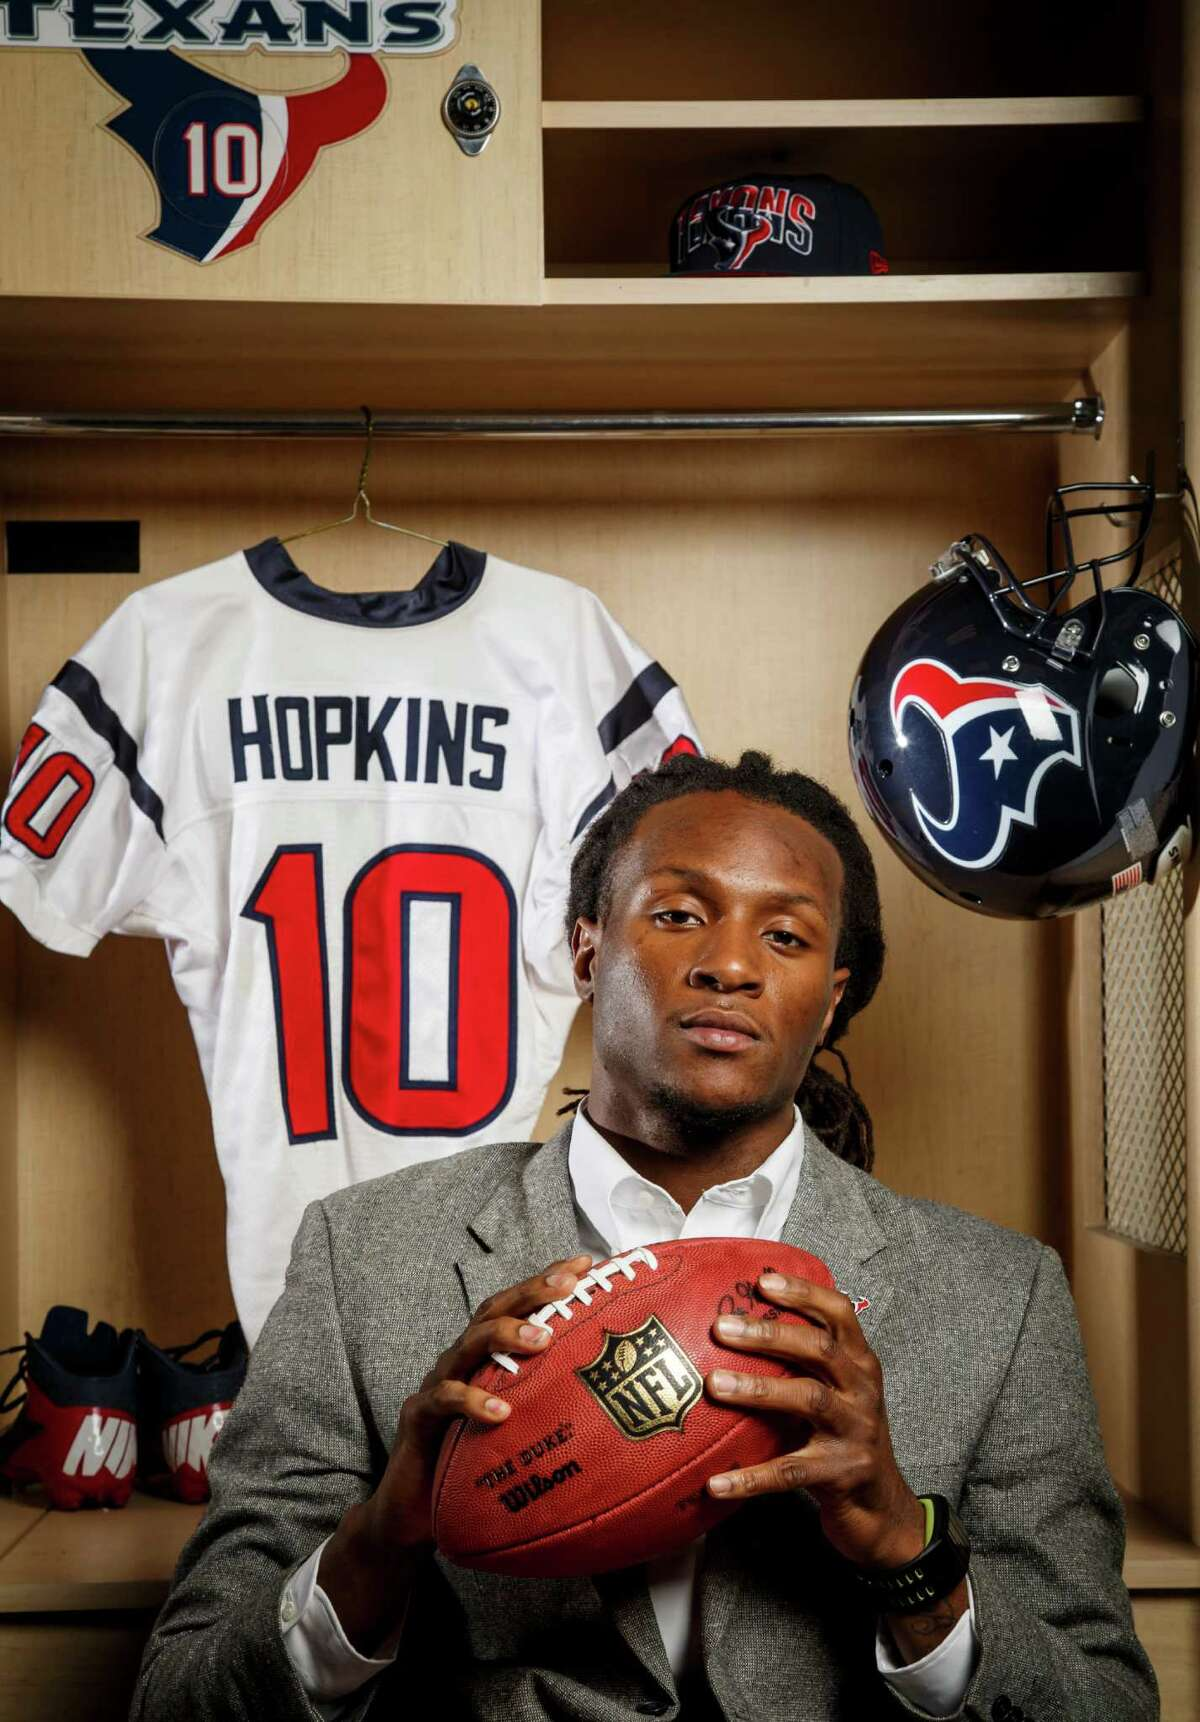 The Texans' first-round draft pick, DeAndre Hopkins, has overcome adversity for much of his life.